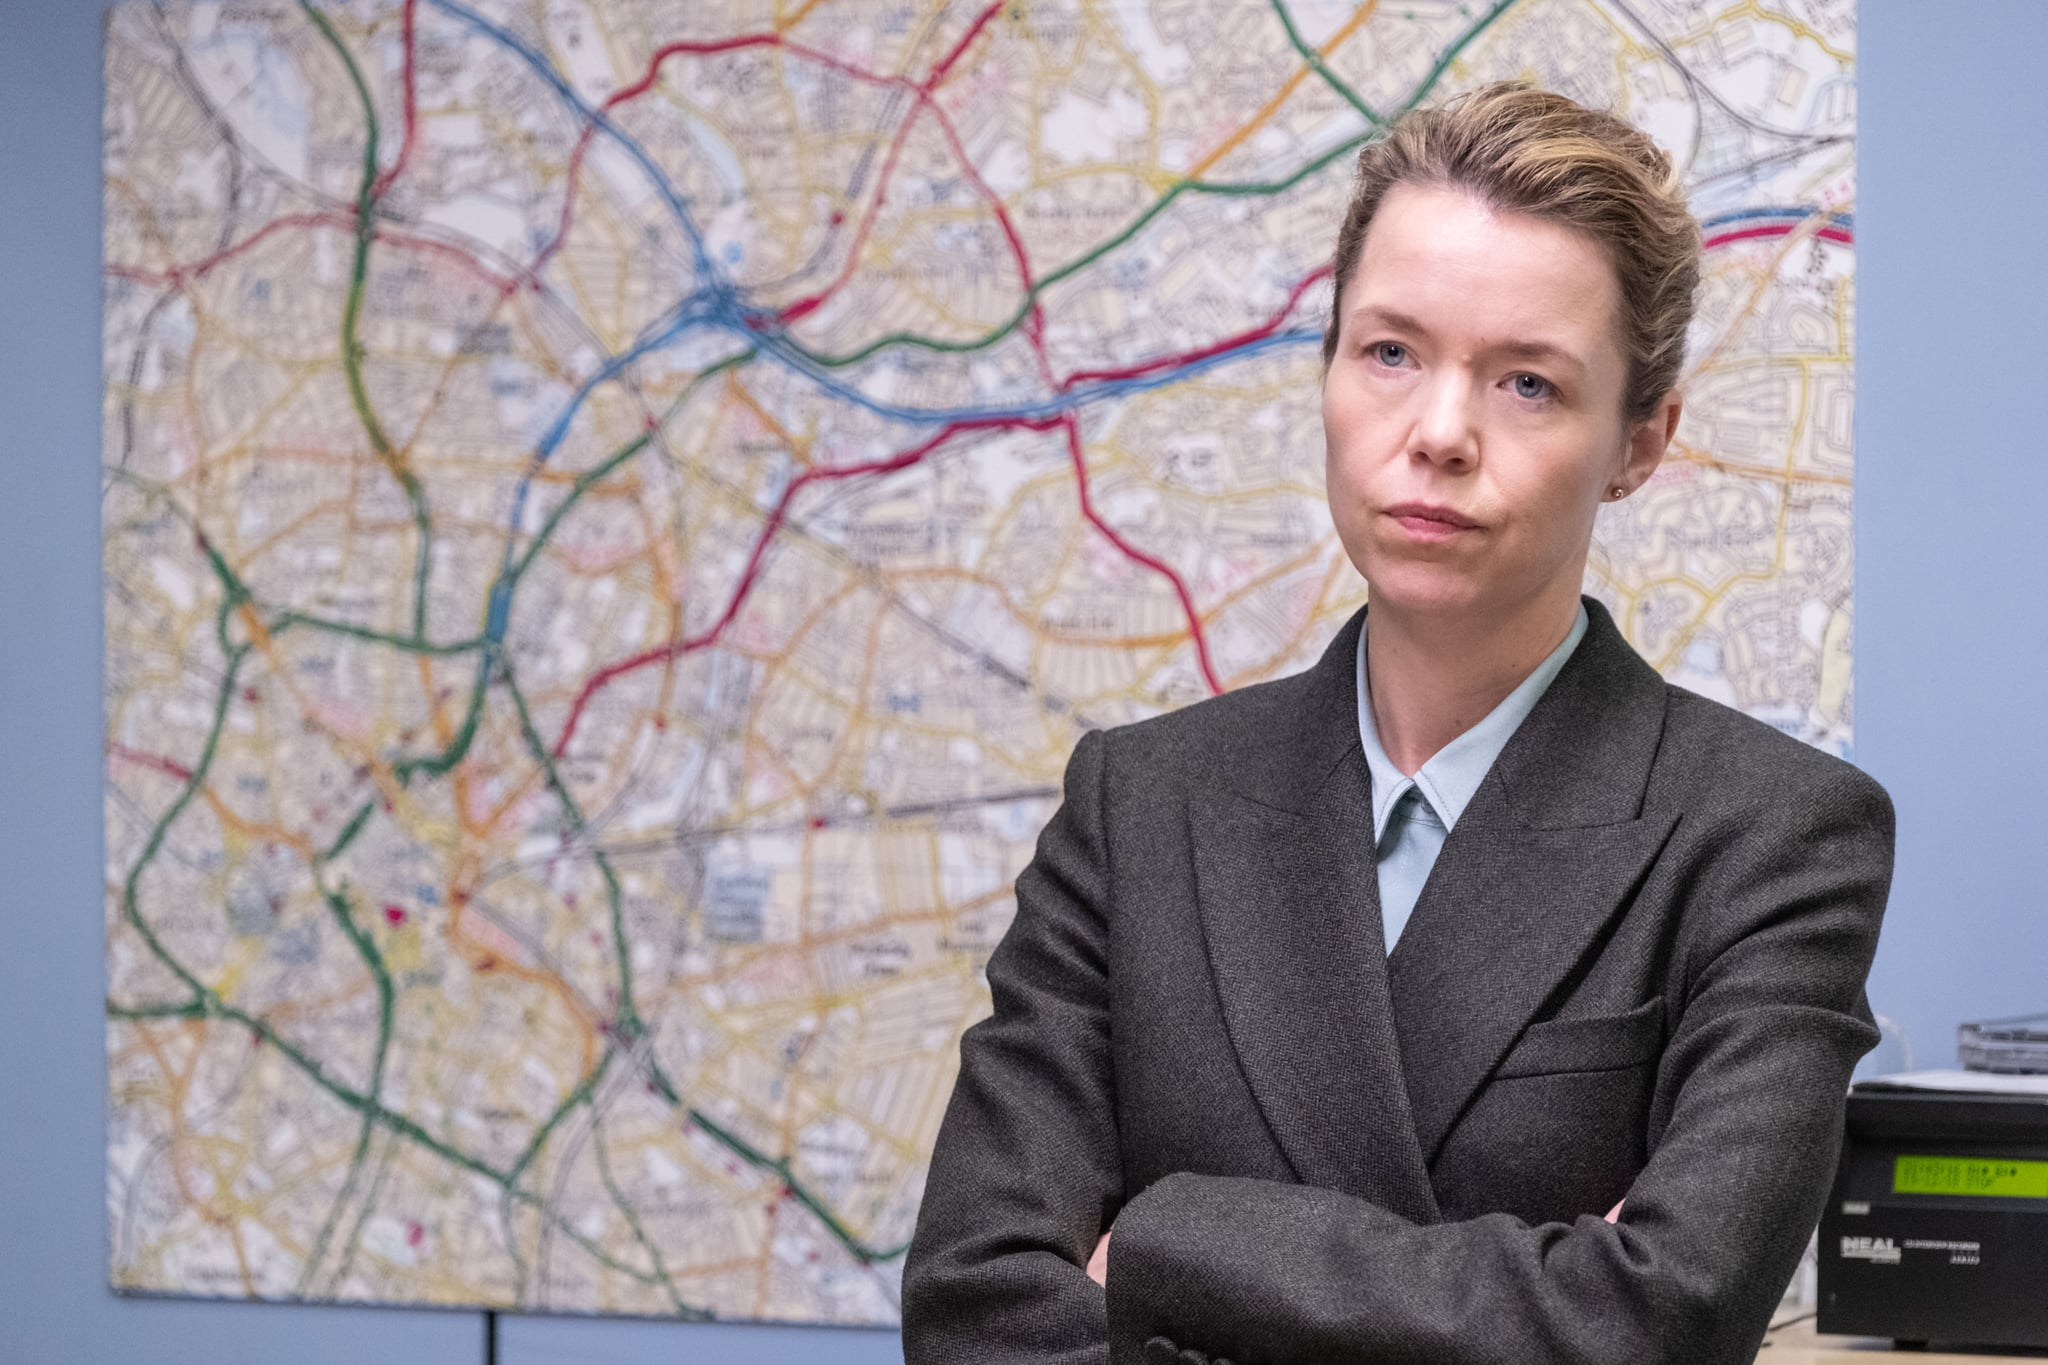 WARNING: Embargoed for publication until 00:00:01 on 30/04/2019 - Programme Name: Line of Duty - Series 5 - TX: n/a - Episode: Line of Duty S5 - Episode 6 (No. 6) - Picture Shows: ***EMBARGOED TILL 00:01 30TH APRIL 2019*** Carmichael (ANNA MAXWELL MARTIN) - (C) World Productions Ltd - Photographer: Aidan Monaghan